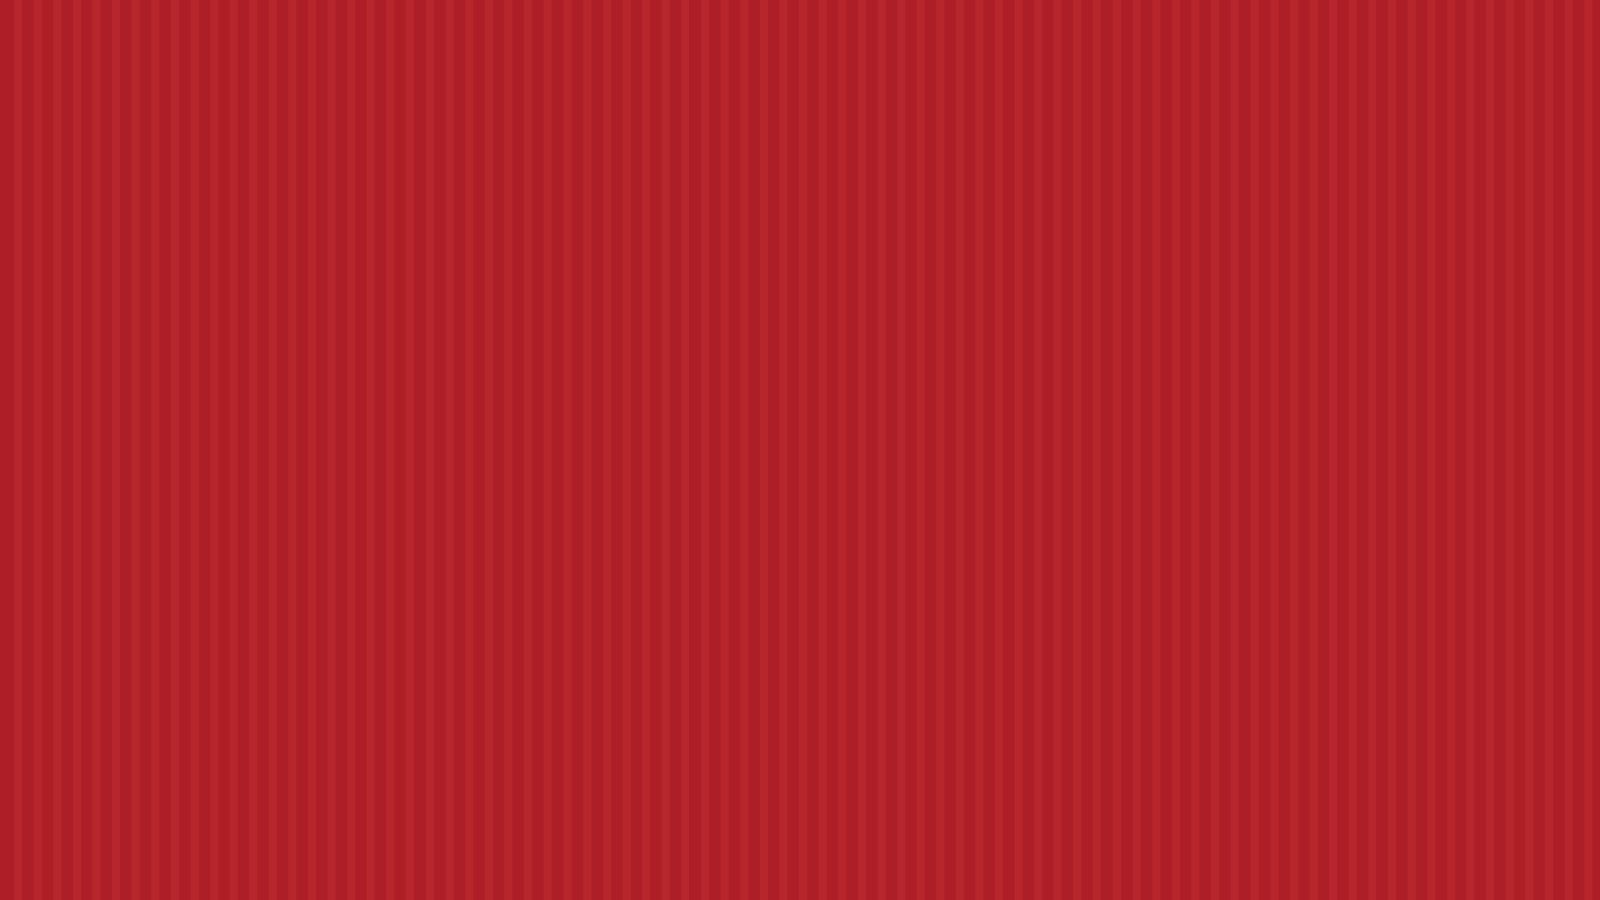 website colors neon : Solid Red Backgrounds Wallpaper Solid Red Backgrounds Hd